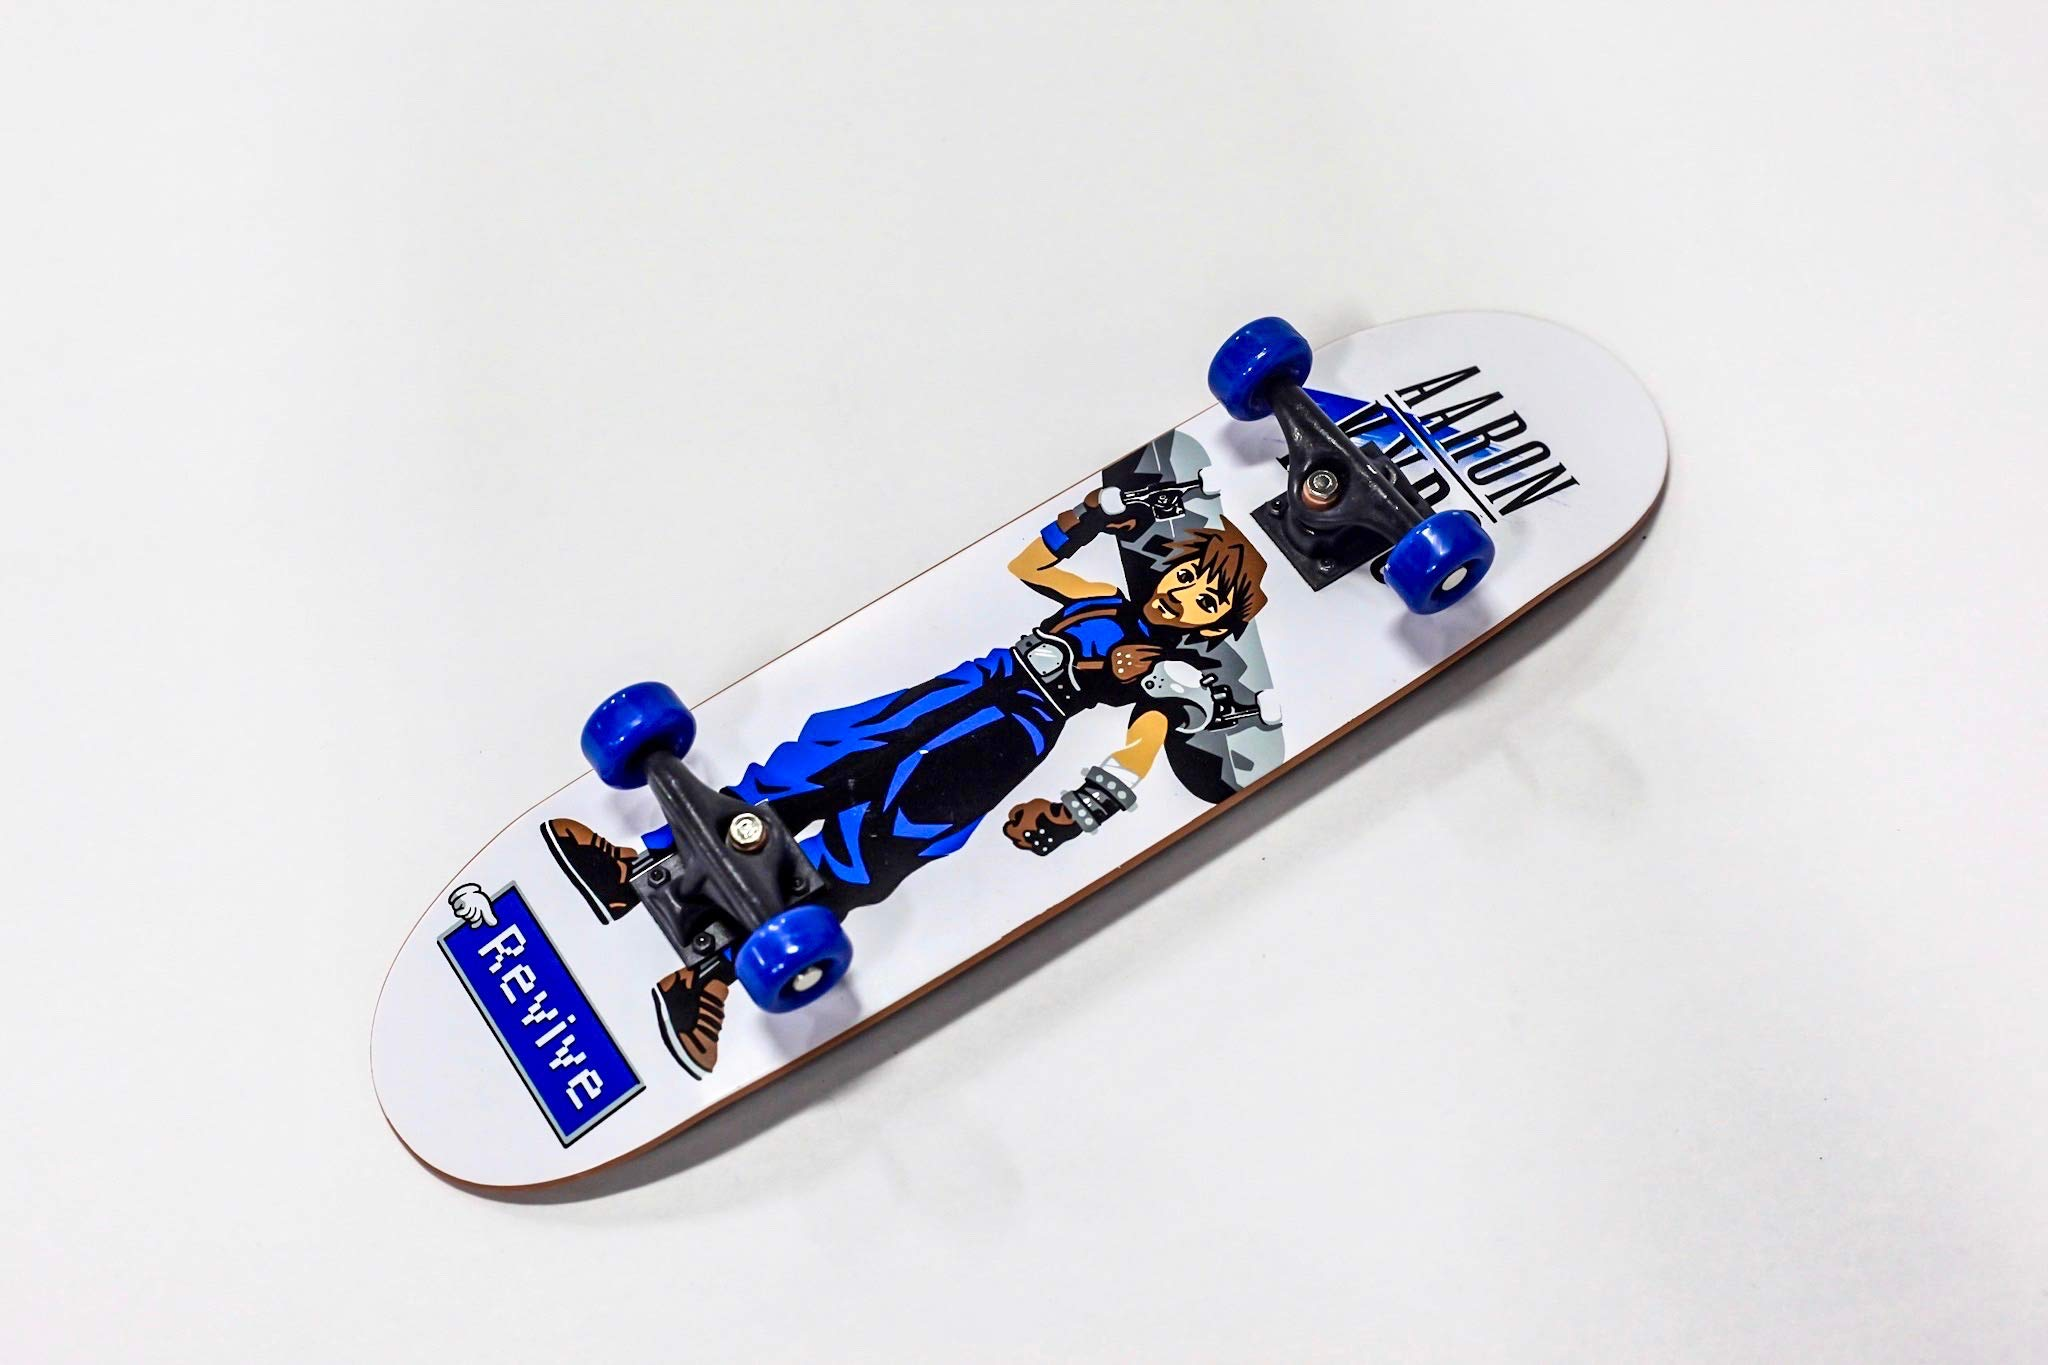 Braille Skateboarding Aaron Kyro Warrior Mini 11inch Professional Hand Board. Toy Skateboard Comes with Wheels, Trucks, Hardware and Tools. Real Griptape. by Braille Skateboarding (Image #1)